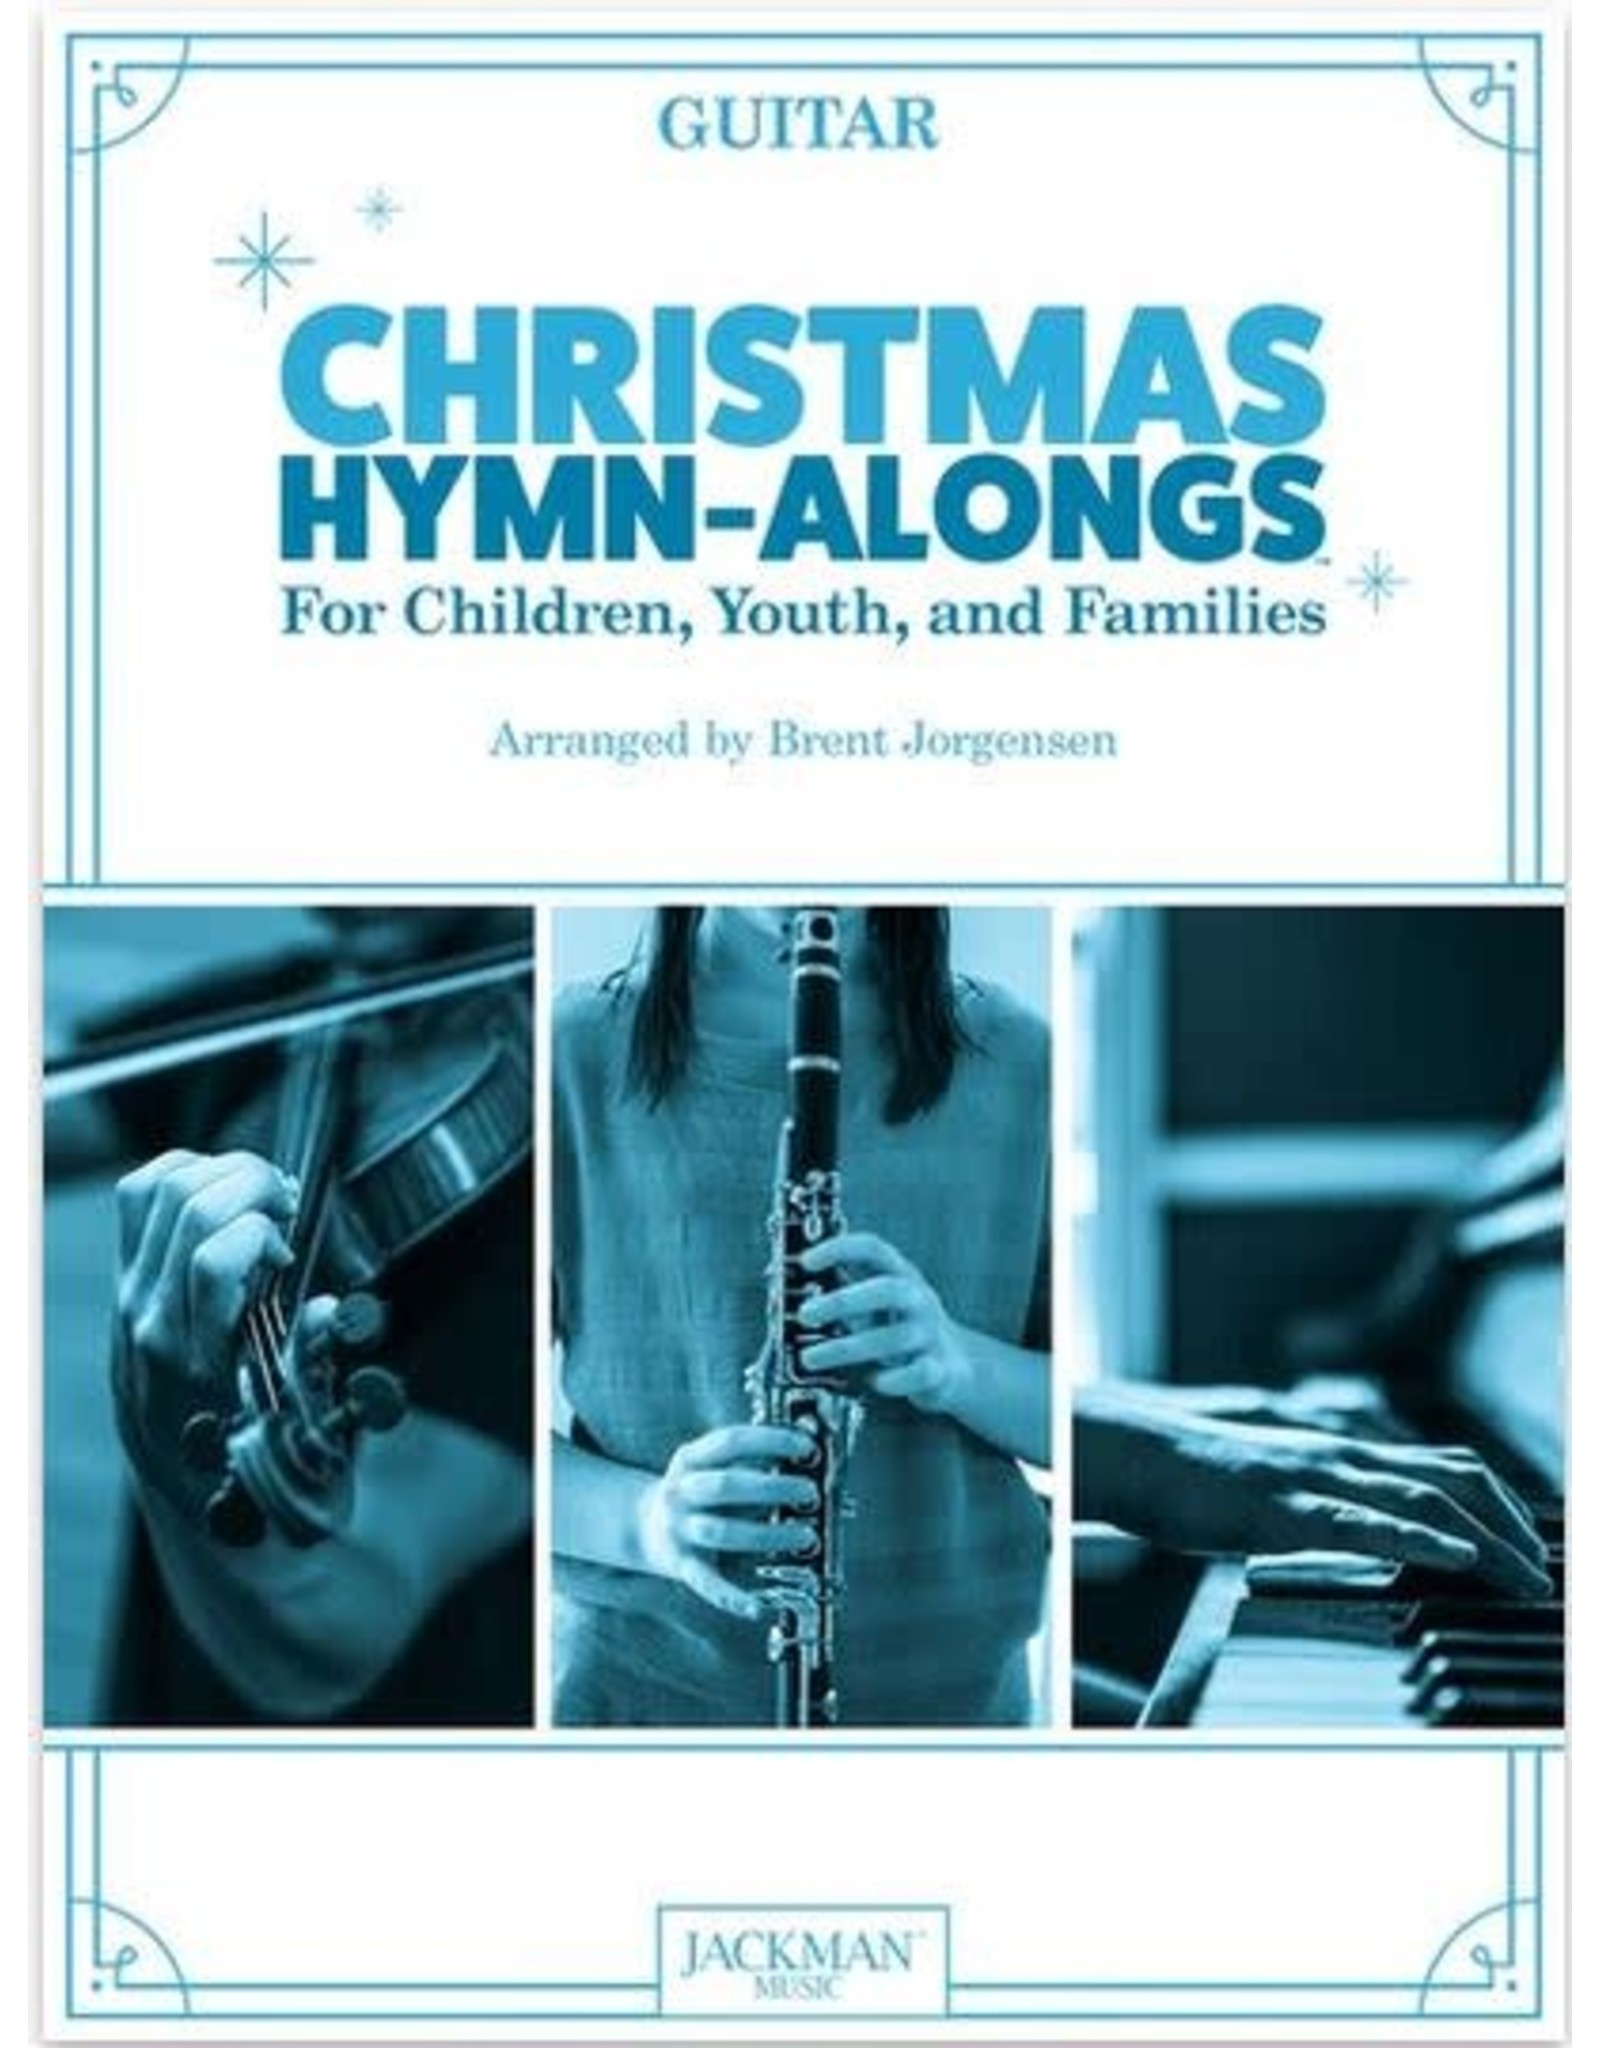 Jackman Music Christmas Hymn-Alongs - arr. Brent Jorgensen - Guitar